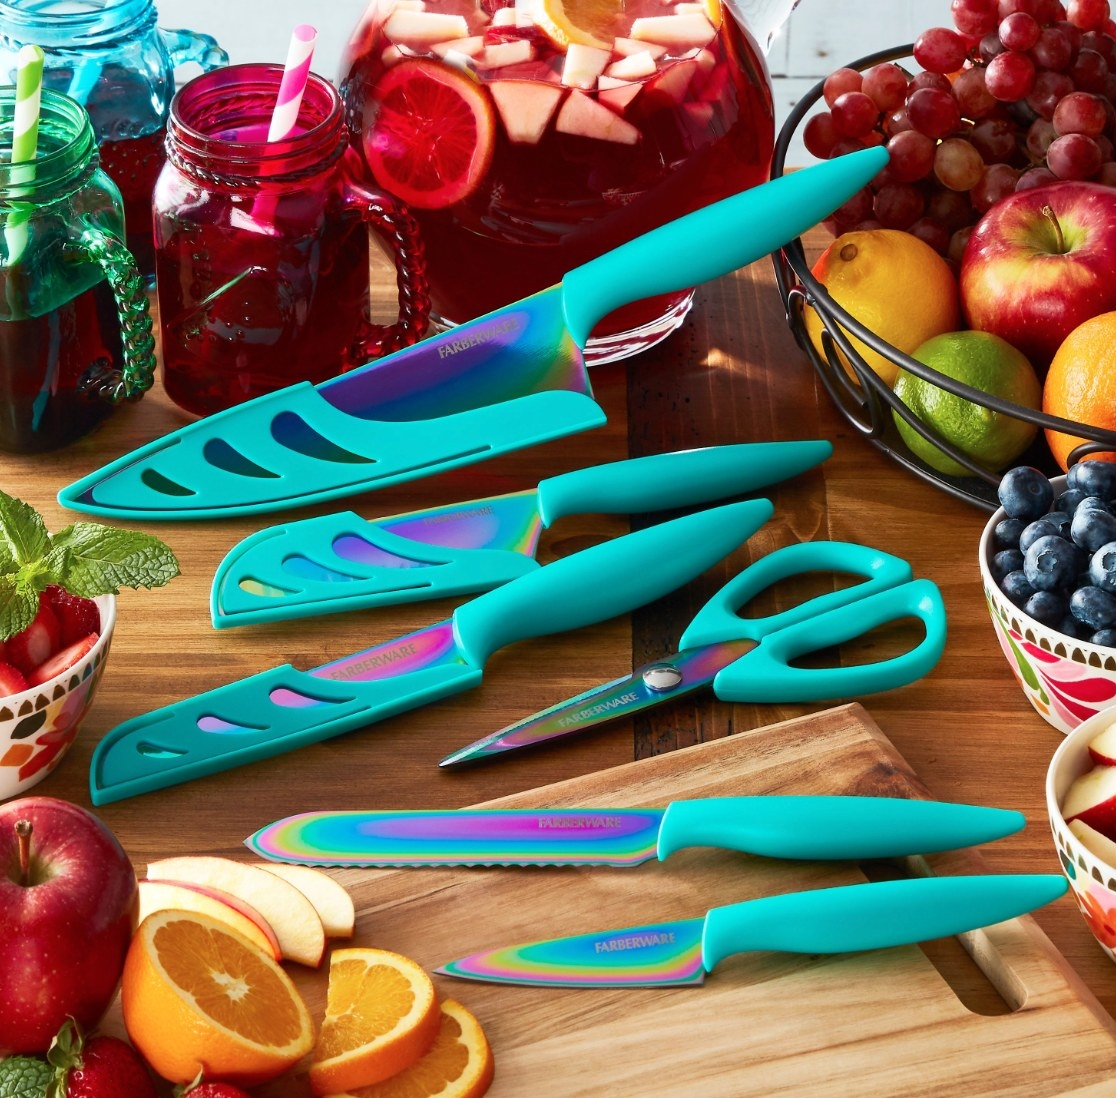 Colorful titanium knives with teal handles sitting on a cutting board